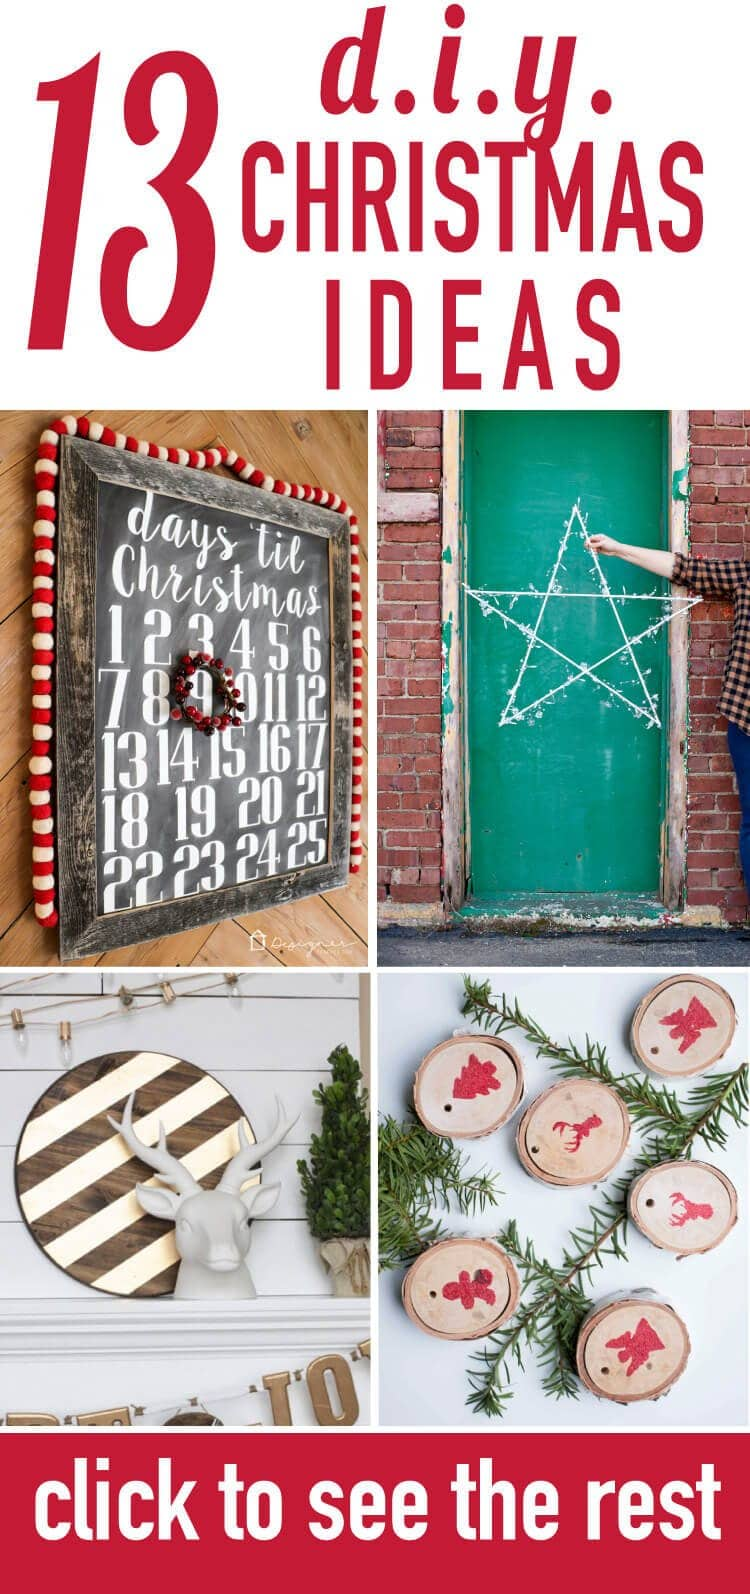 Love these original and creative DIY Christmas decorating ideas! If you need ideas for Christmas decorations and Christmas decor, be sure to check these out--my faves are number 2 and 6!